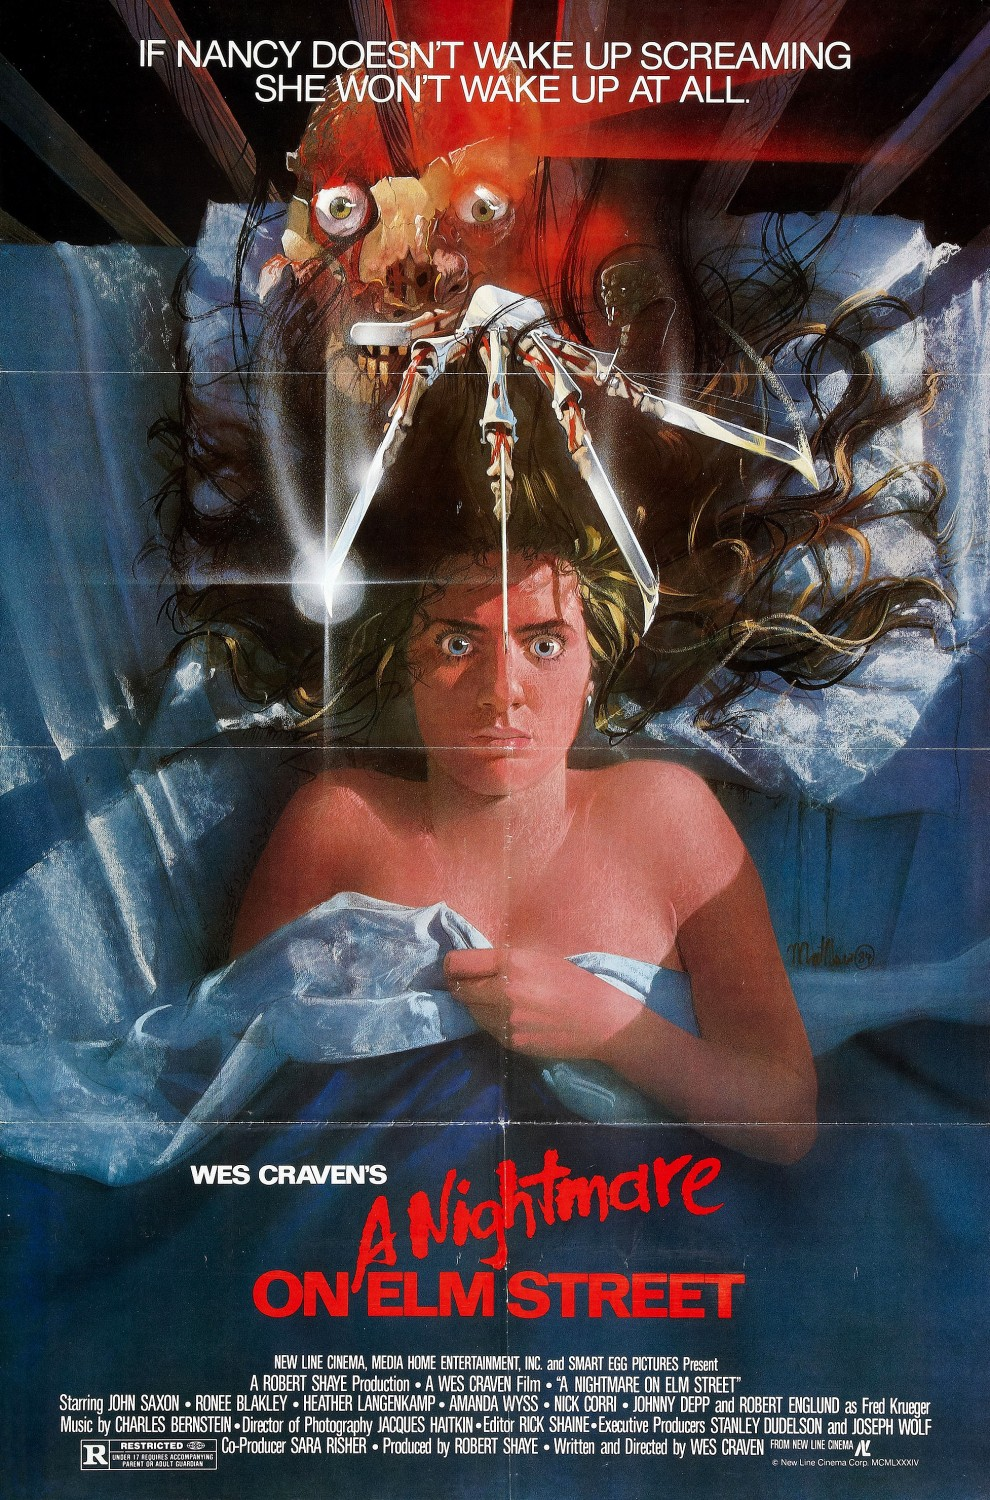 A Nightmare on Elm Street original poster